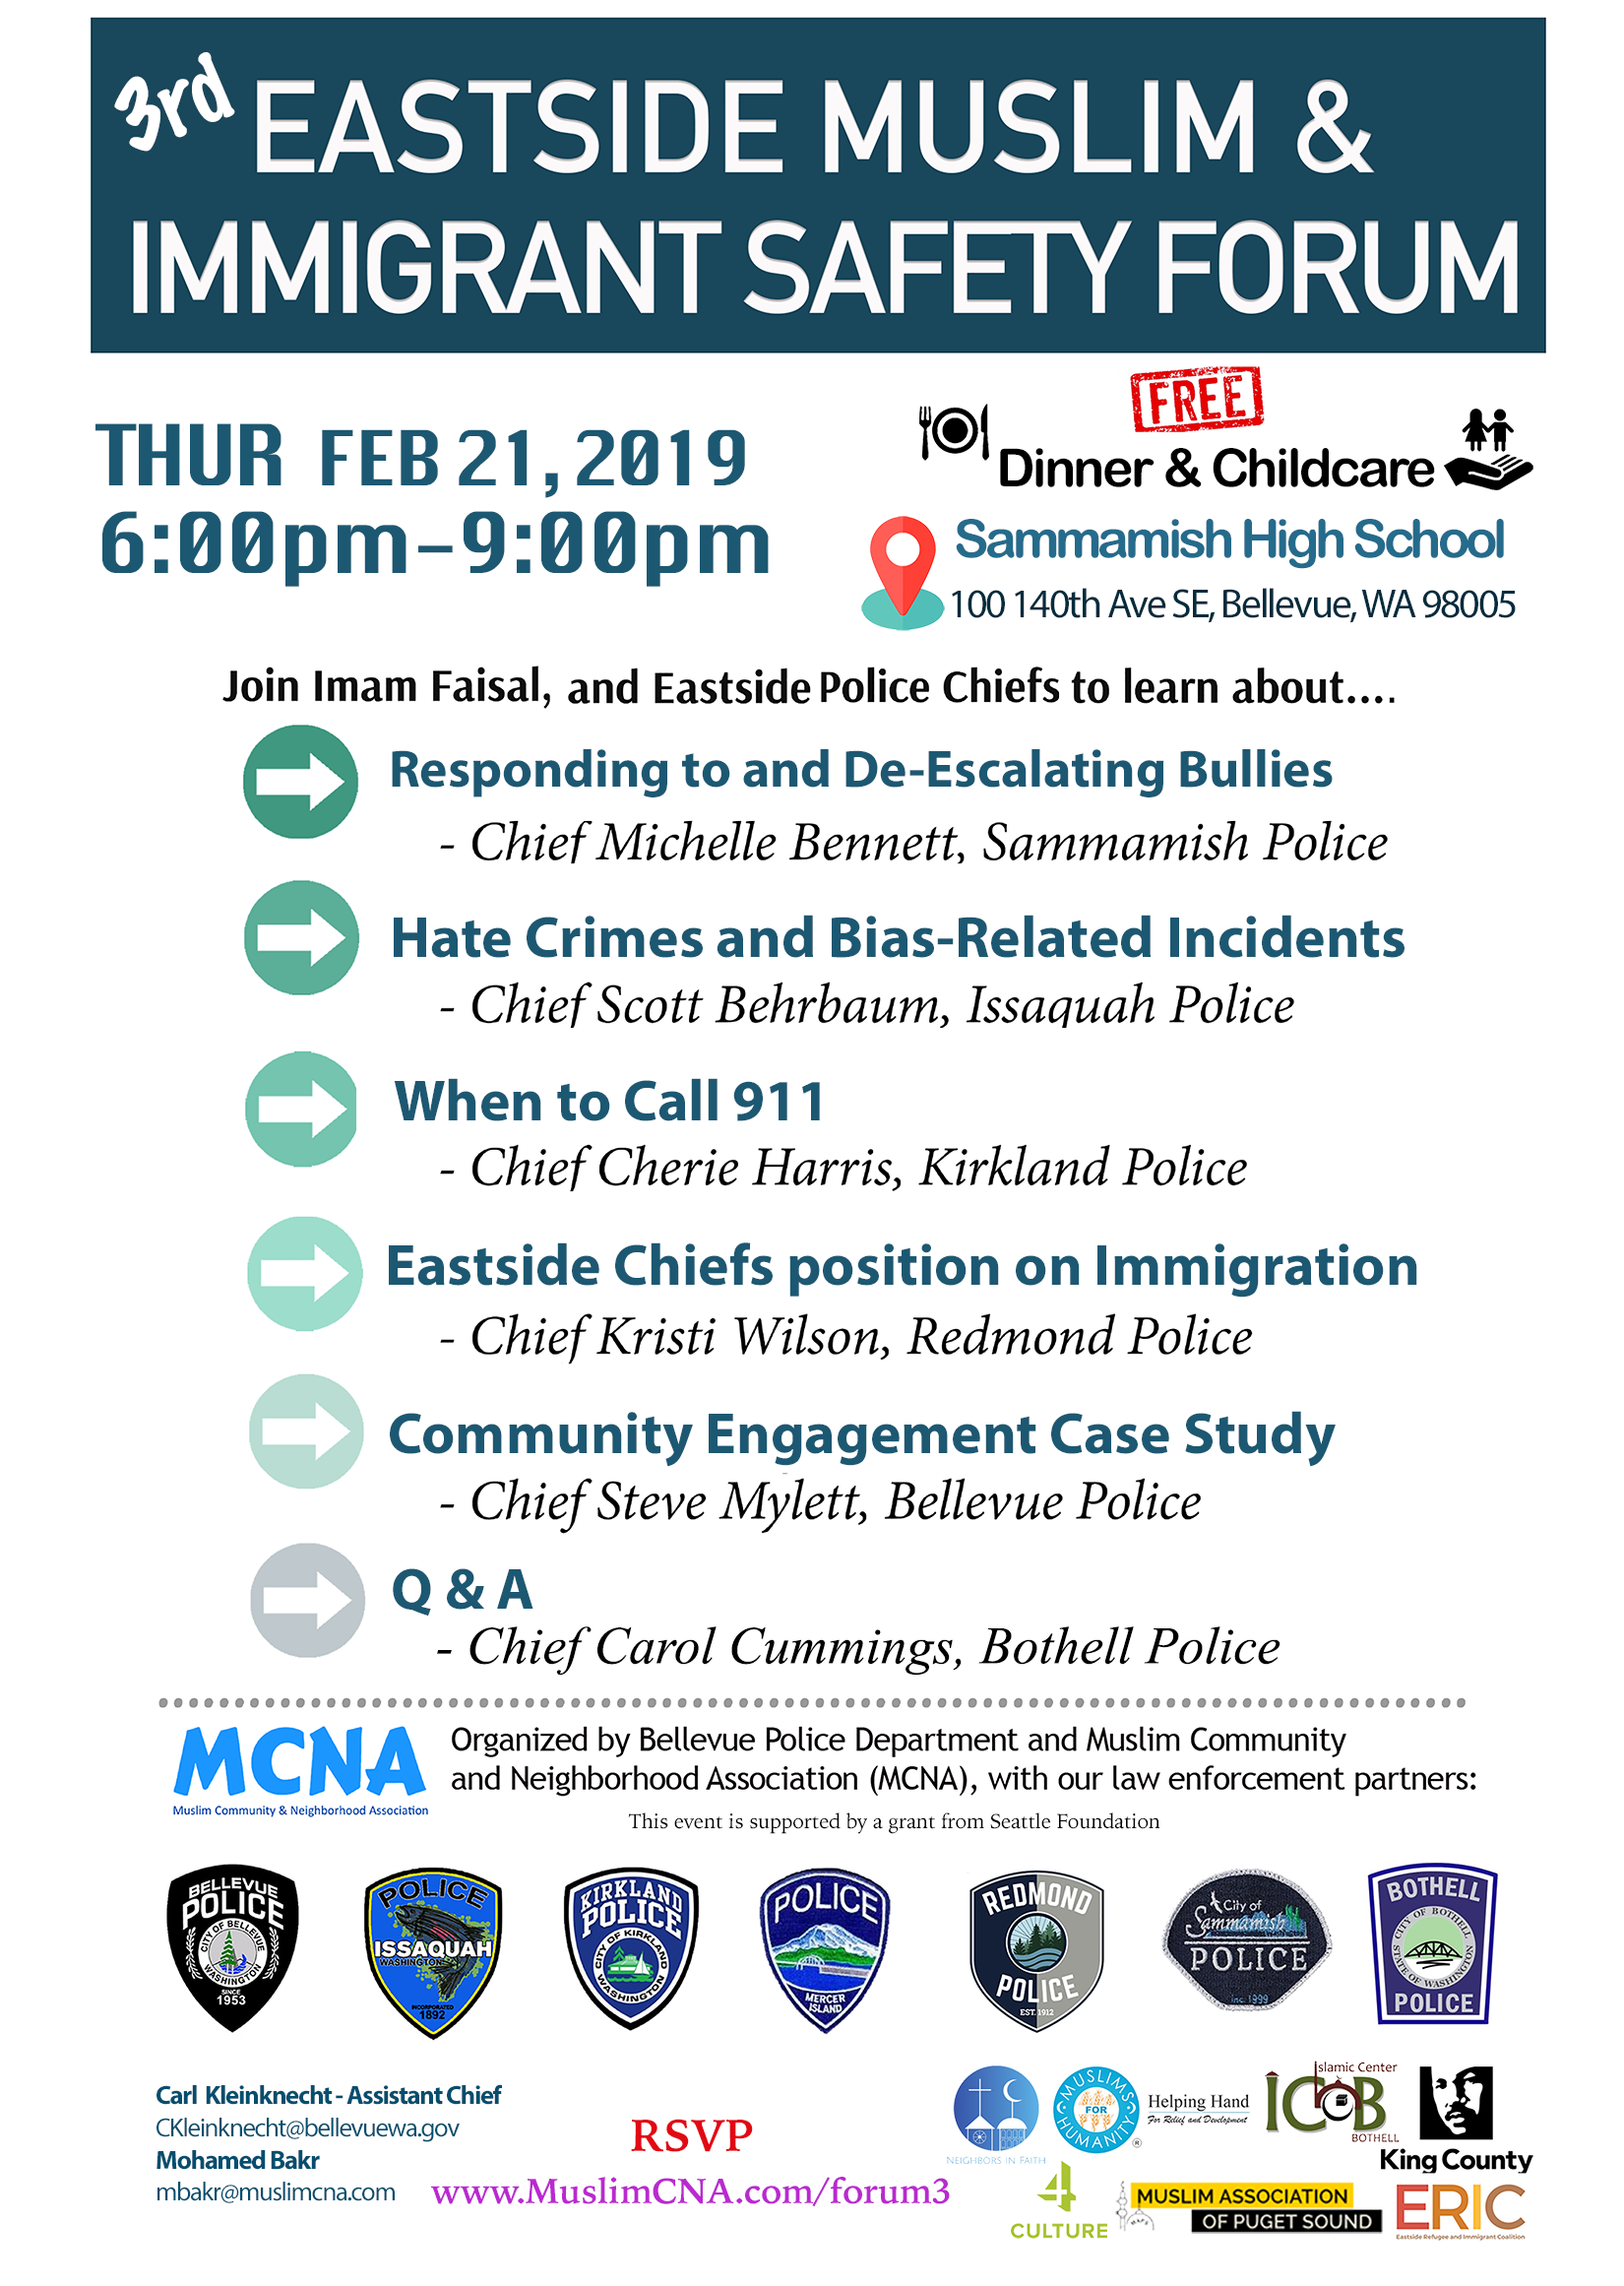 MCNA Eastside Immigrant and Safety Forum 2019